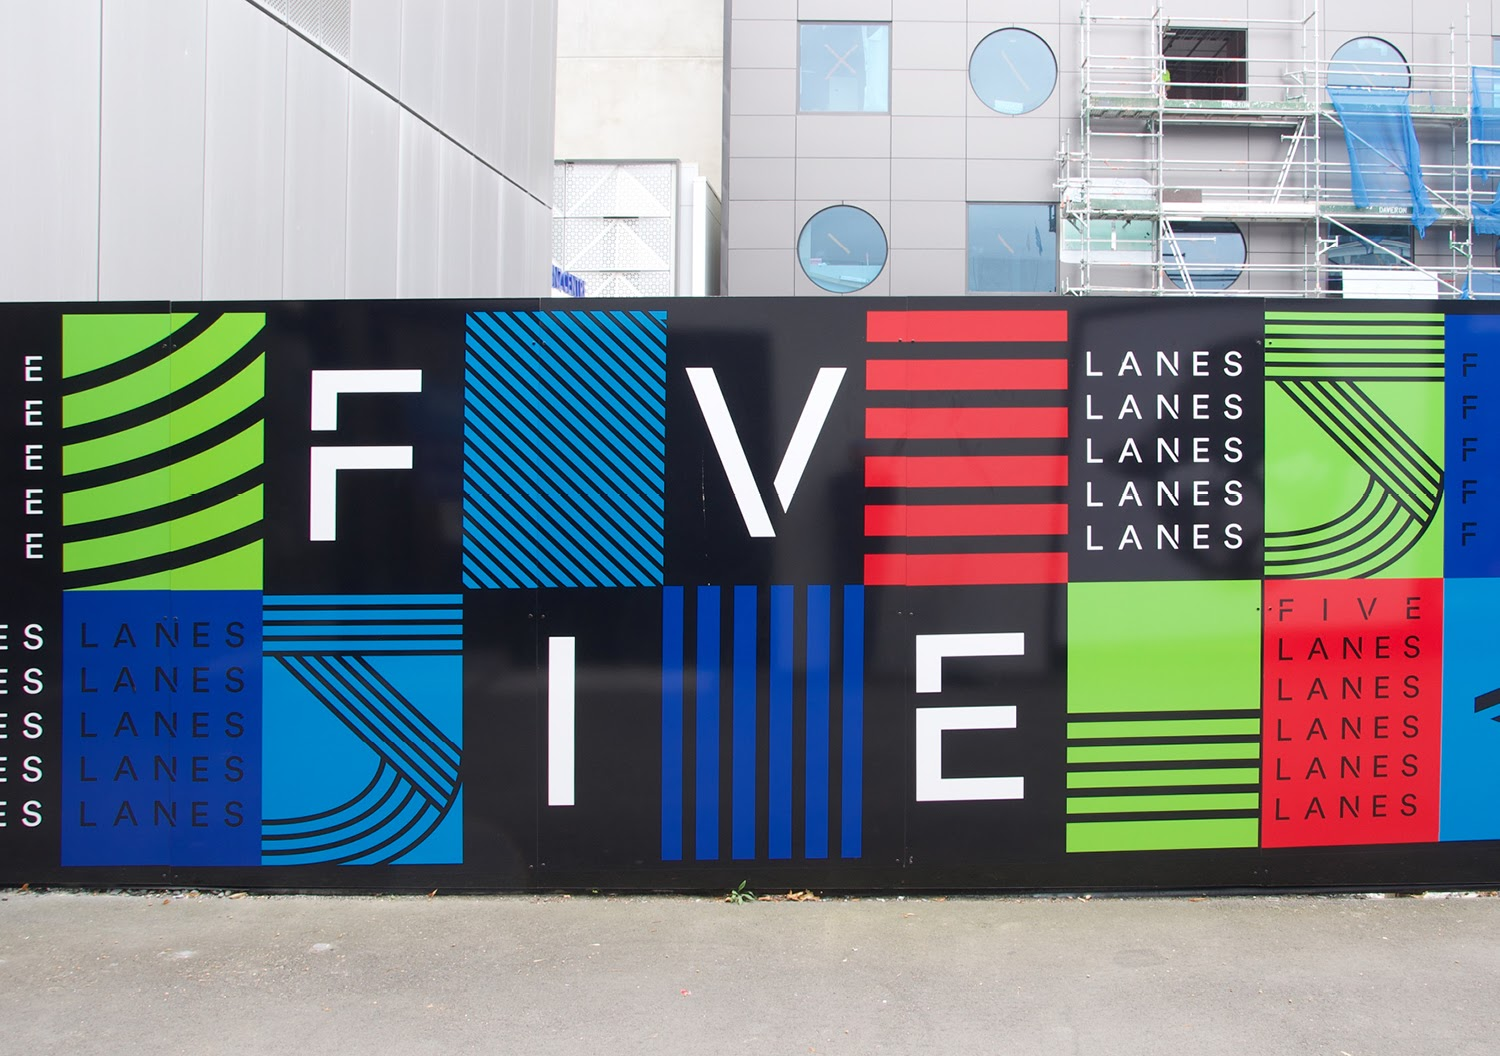 Strategy Christchurch brings 'Five Lanes' to life with bold brand identity